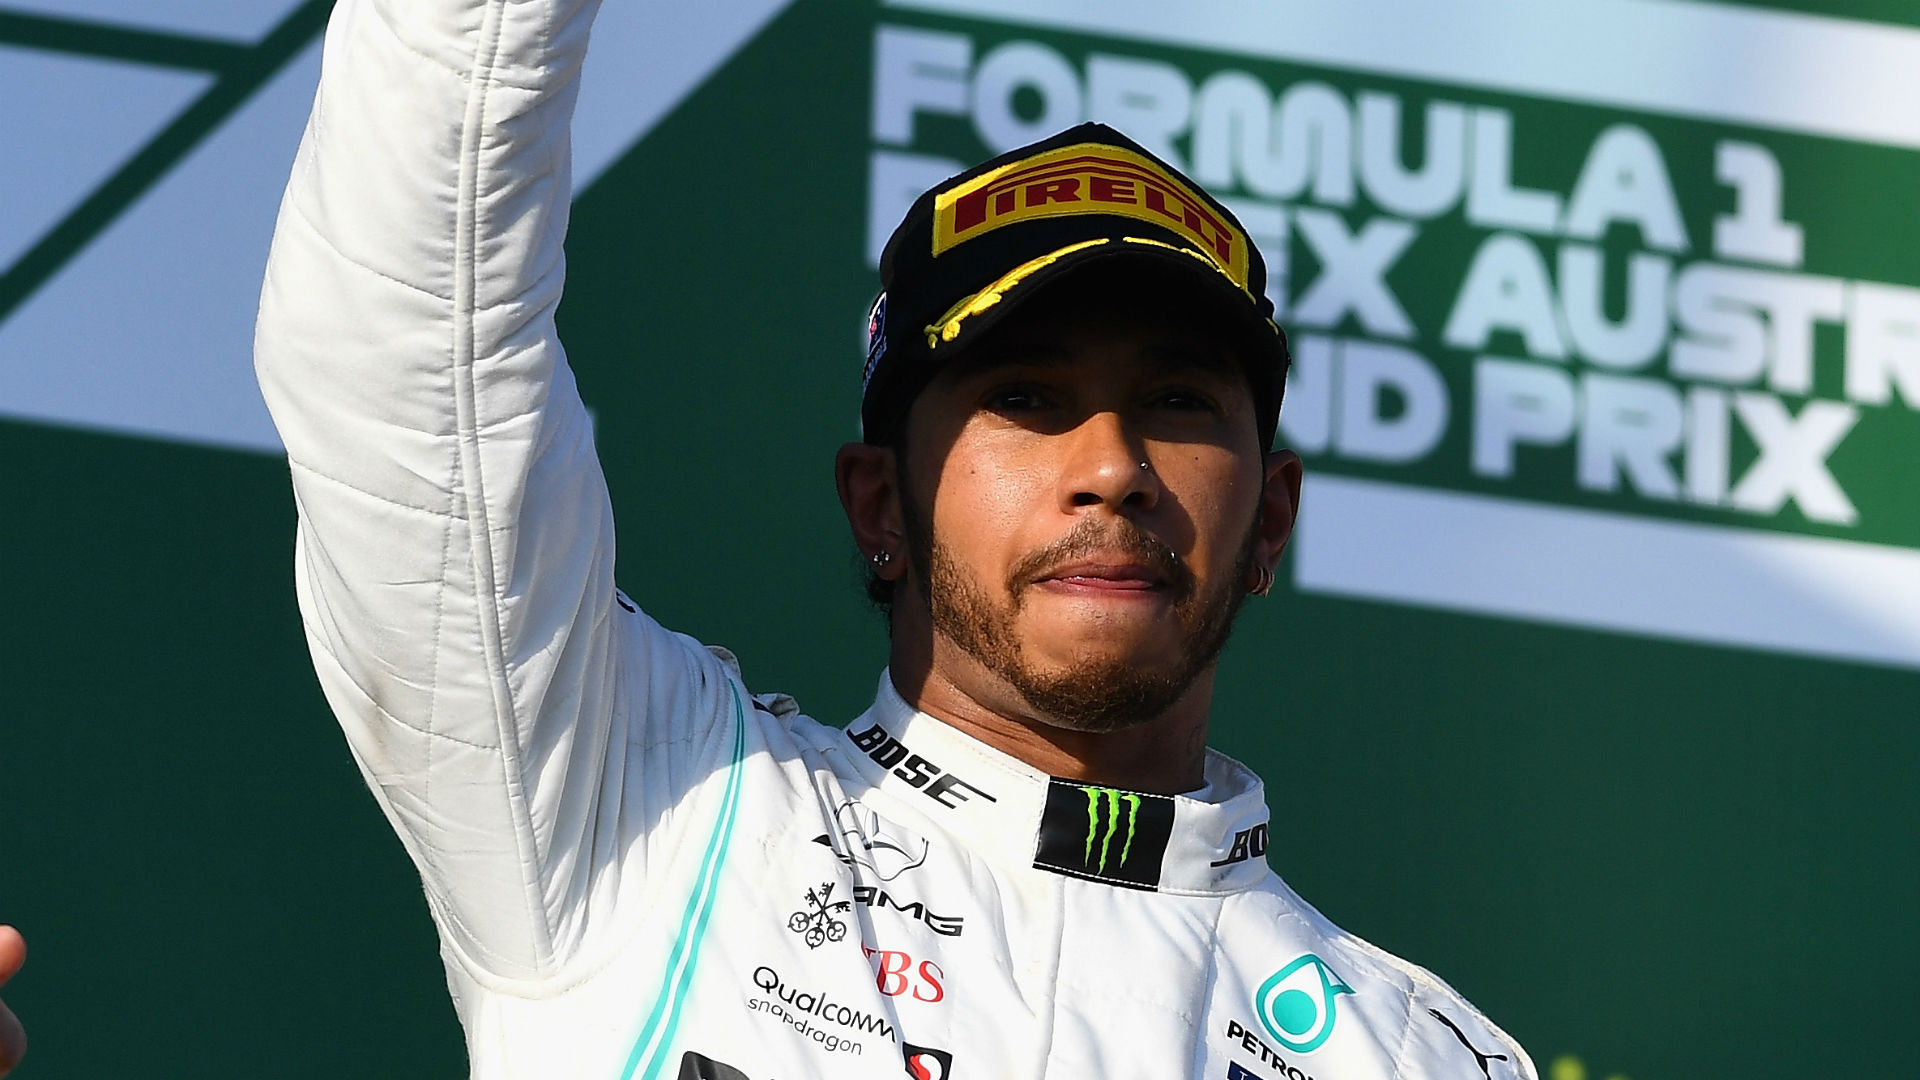 Hamilton yet to open contract talks with Mercedes